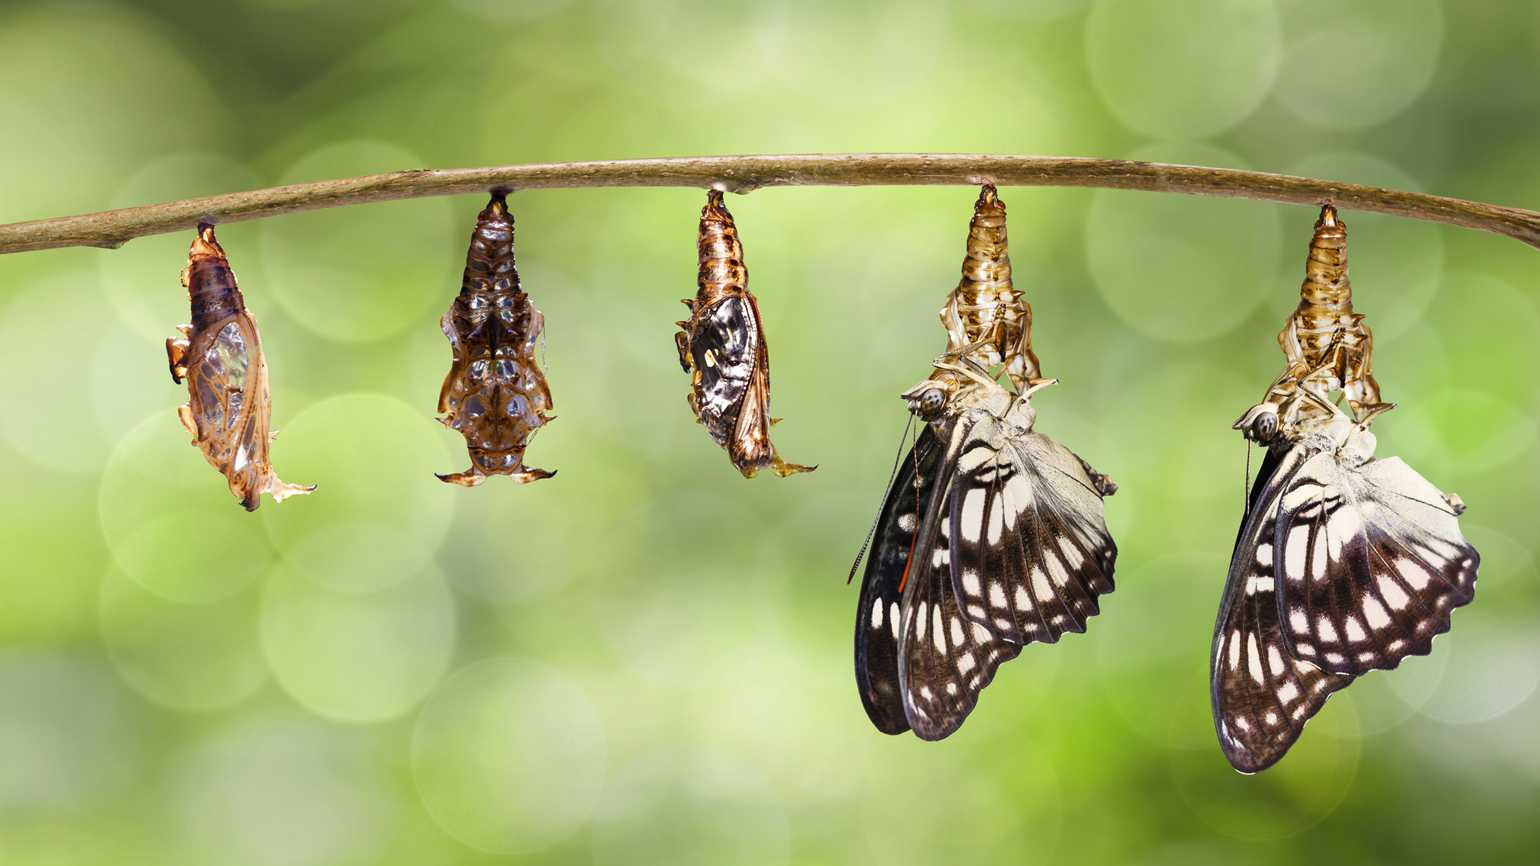 The stages of a caterpillar changing into a butterfly.